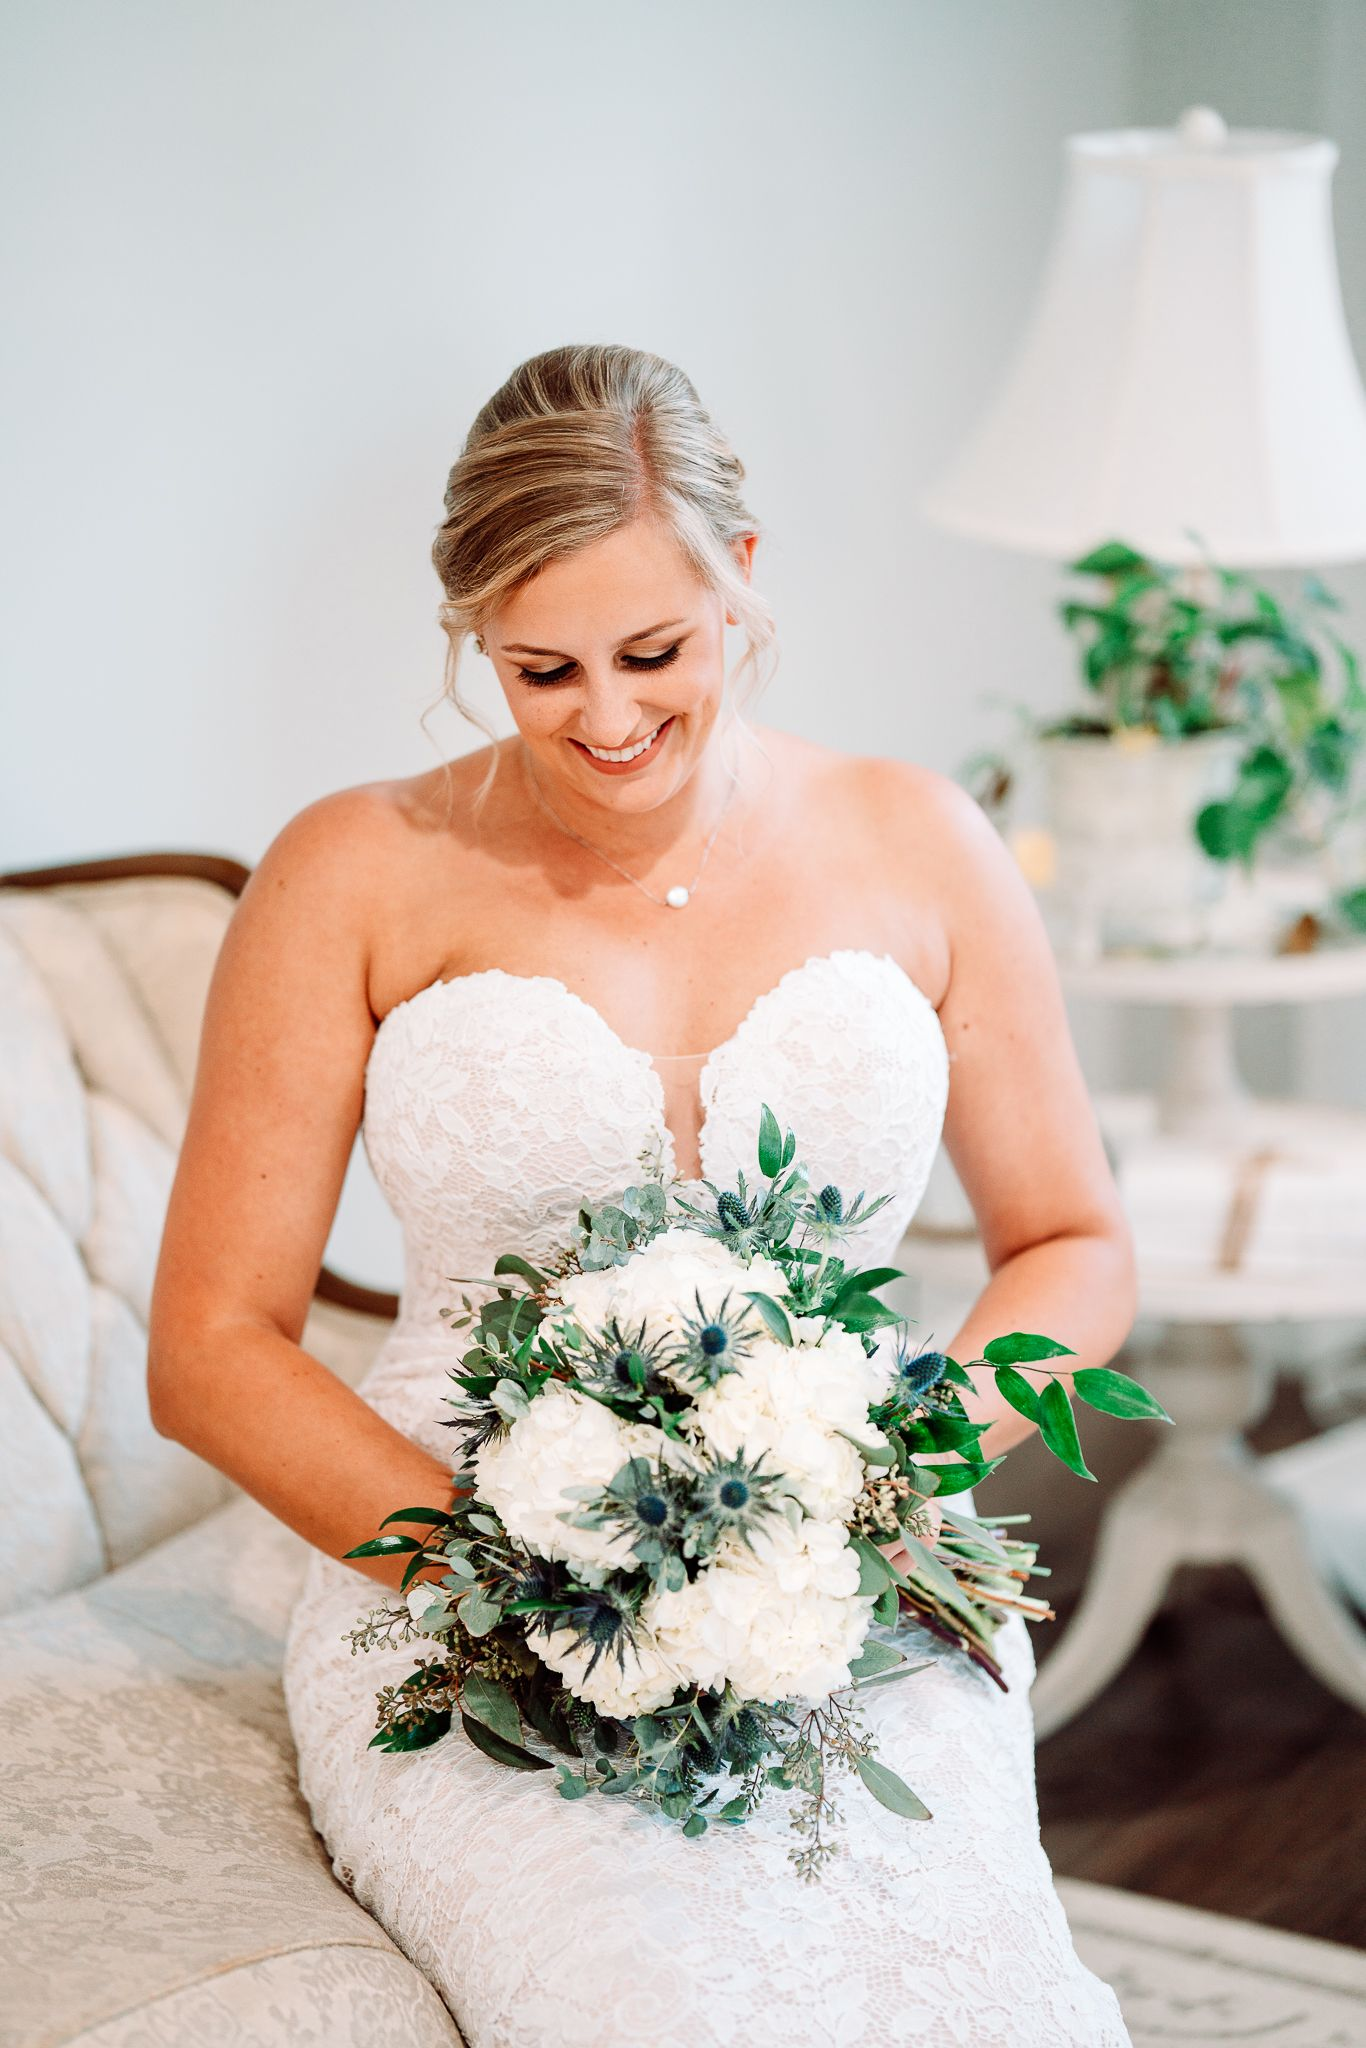 Bride sitting and looking at her bouquet at The Blessed Barn in Aynor, SC, by PHV Photo